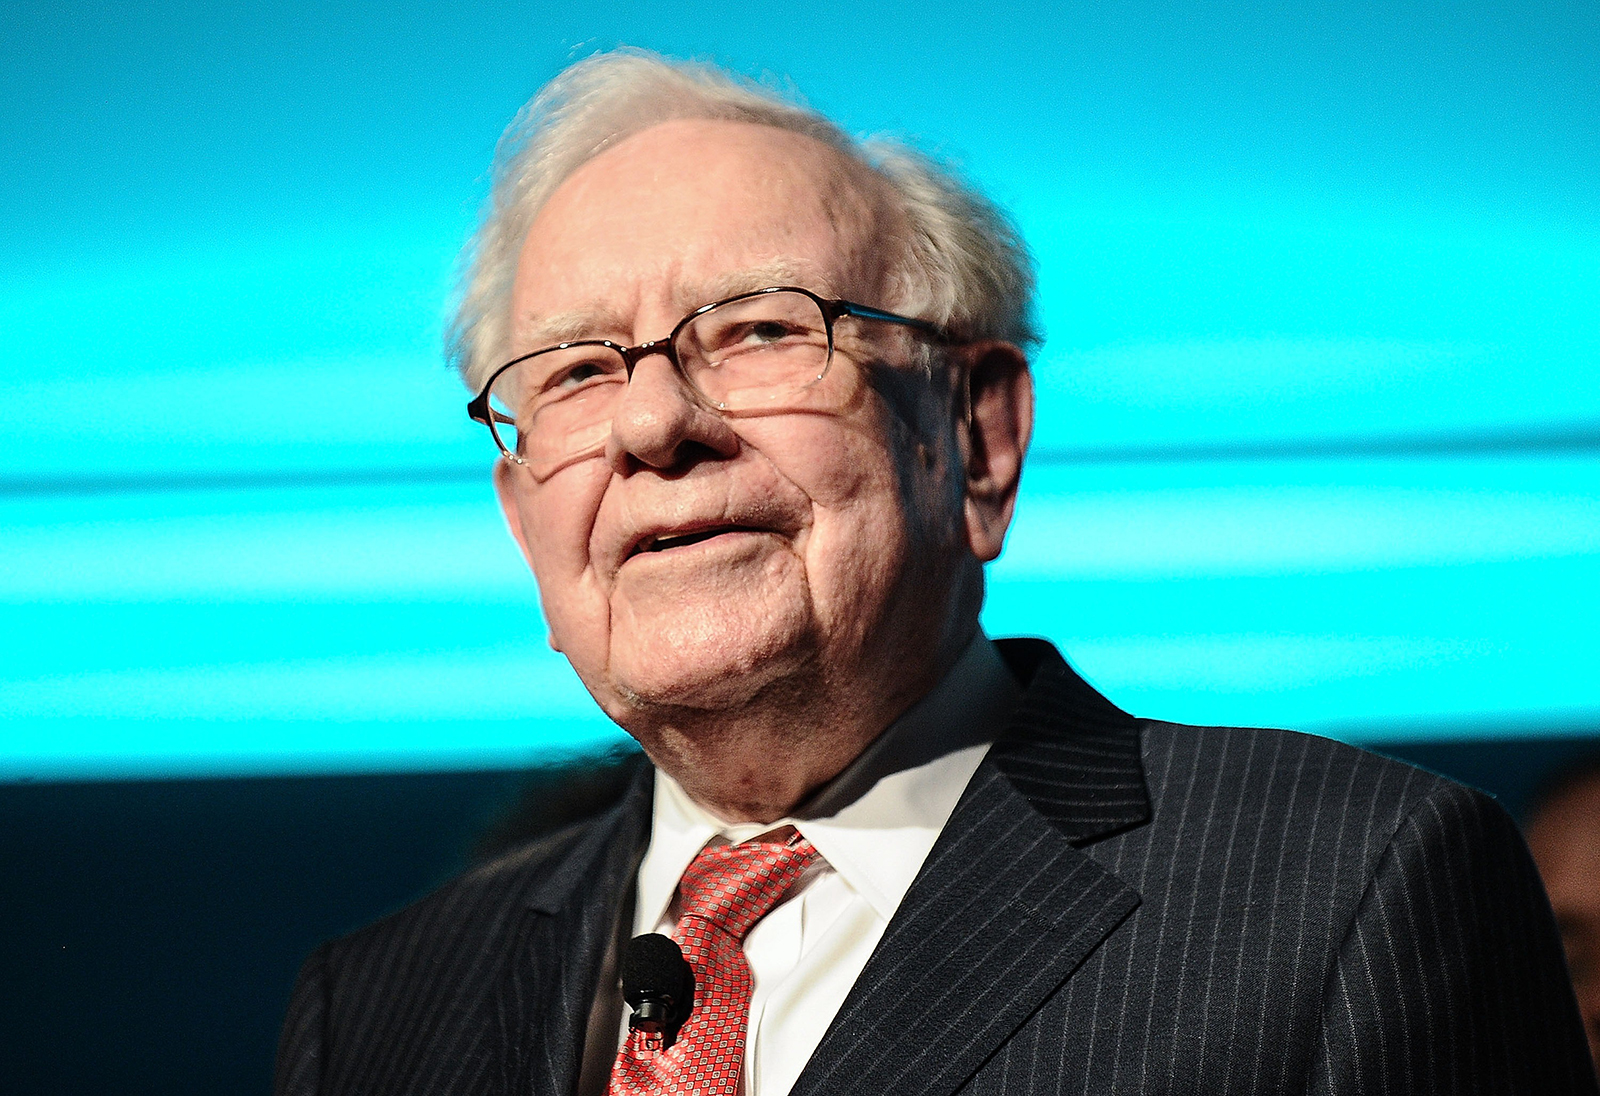 Warren Buffett sees shades of 1980s crisis in today's bond market